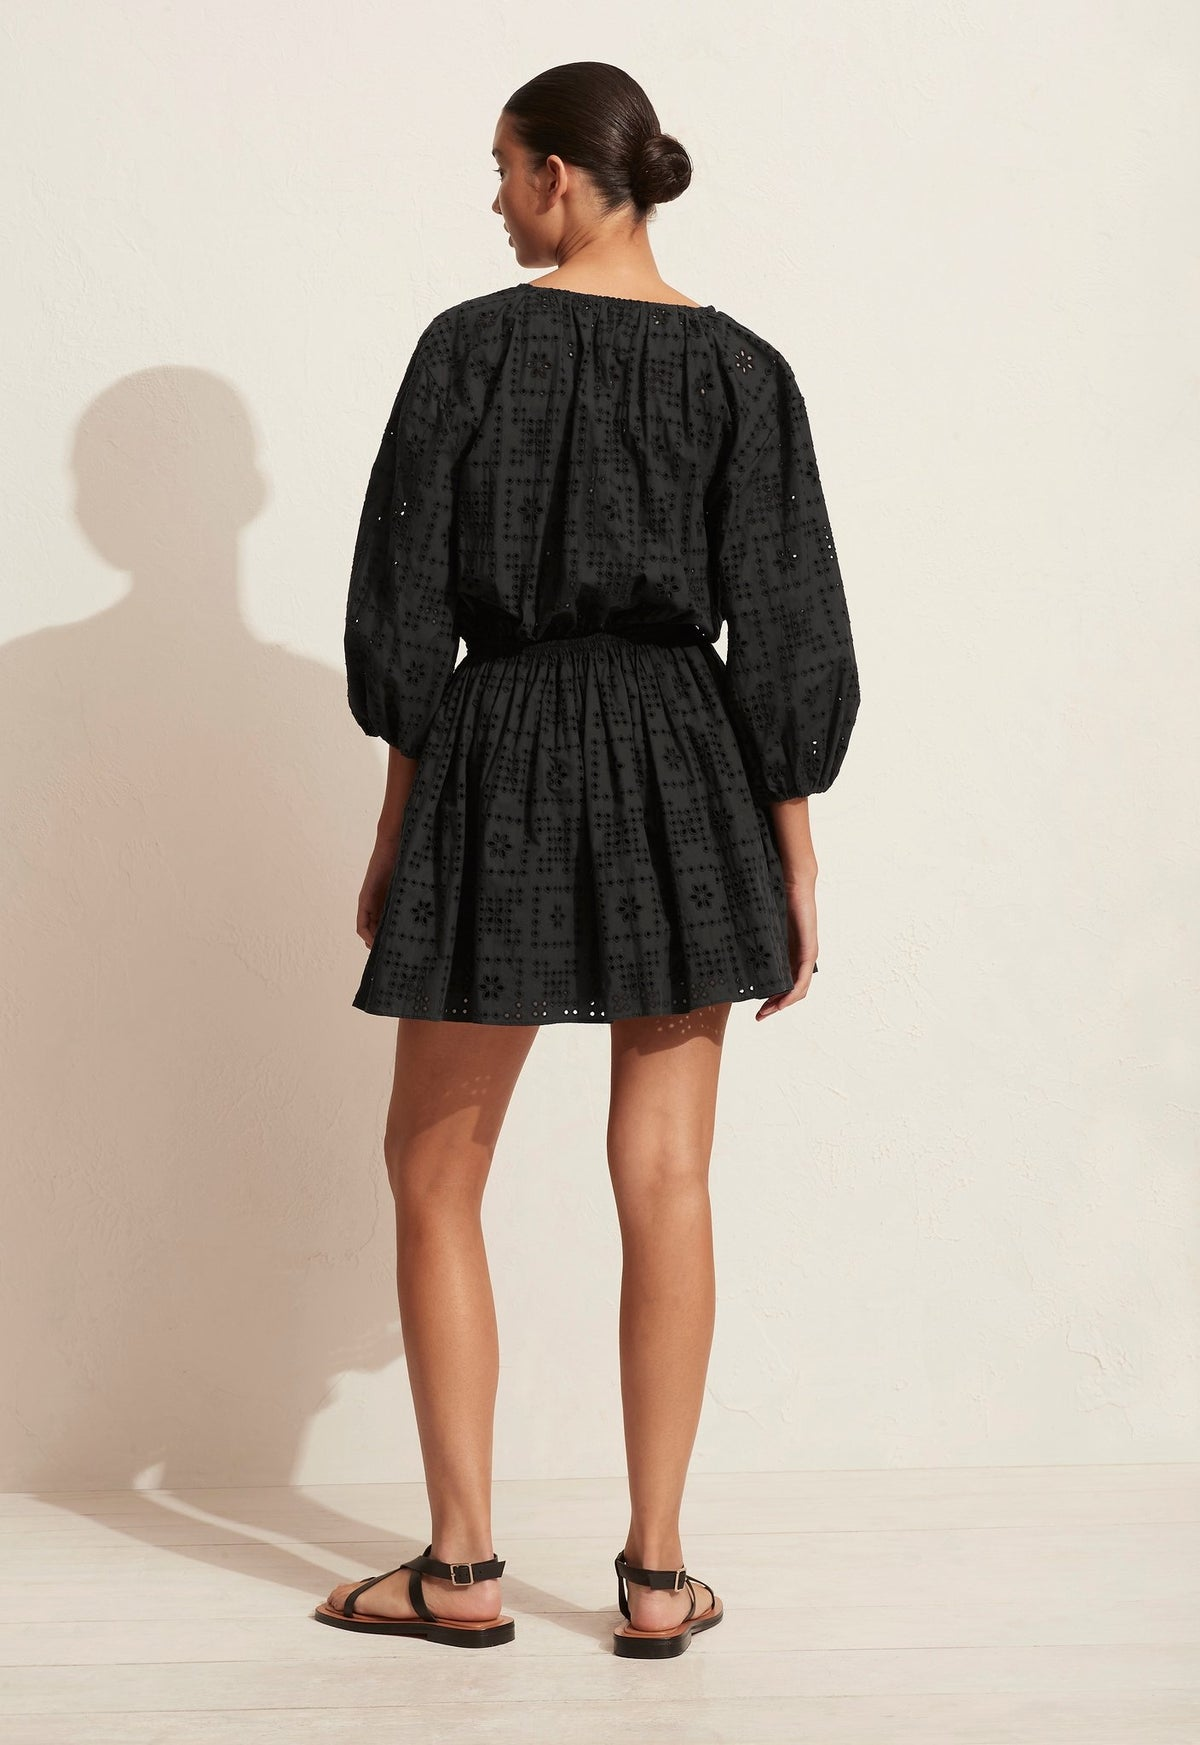 The Crochet Broderie Mini Dress